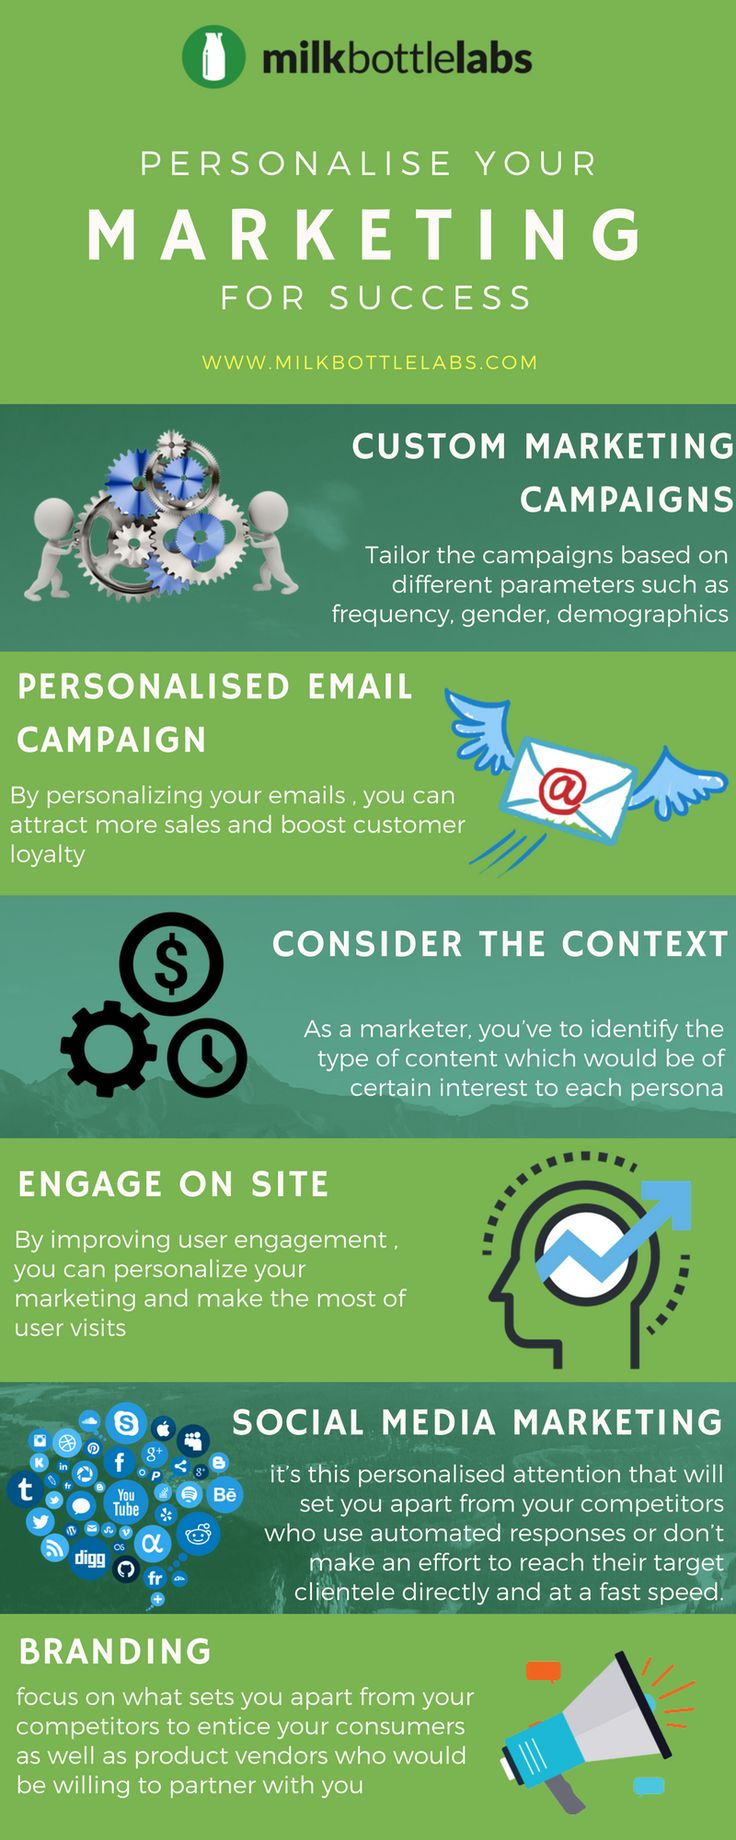 It describes about personalising our marketing for success. It includes, Custom Marketing Campaigns, Personalised Email Campaigns, Engagement On the Site, Social Media Marketing & Branding.